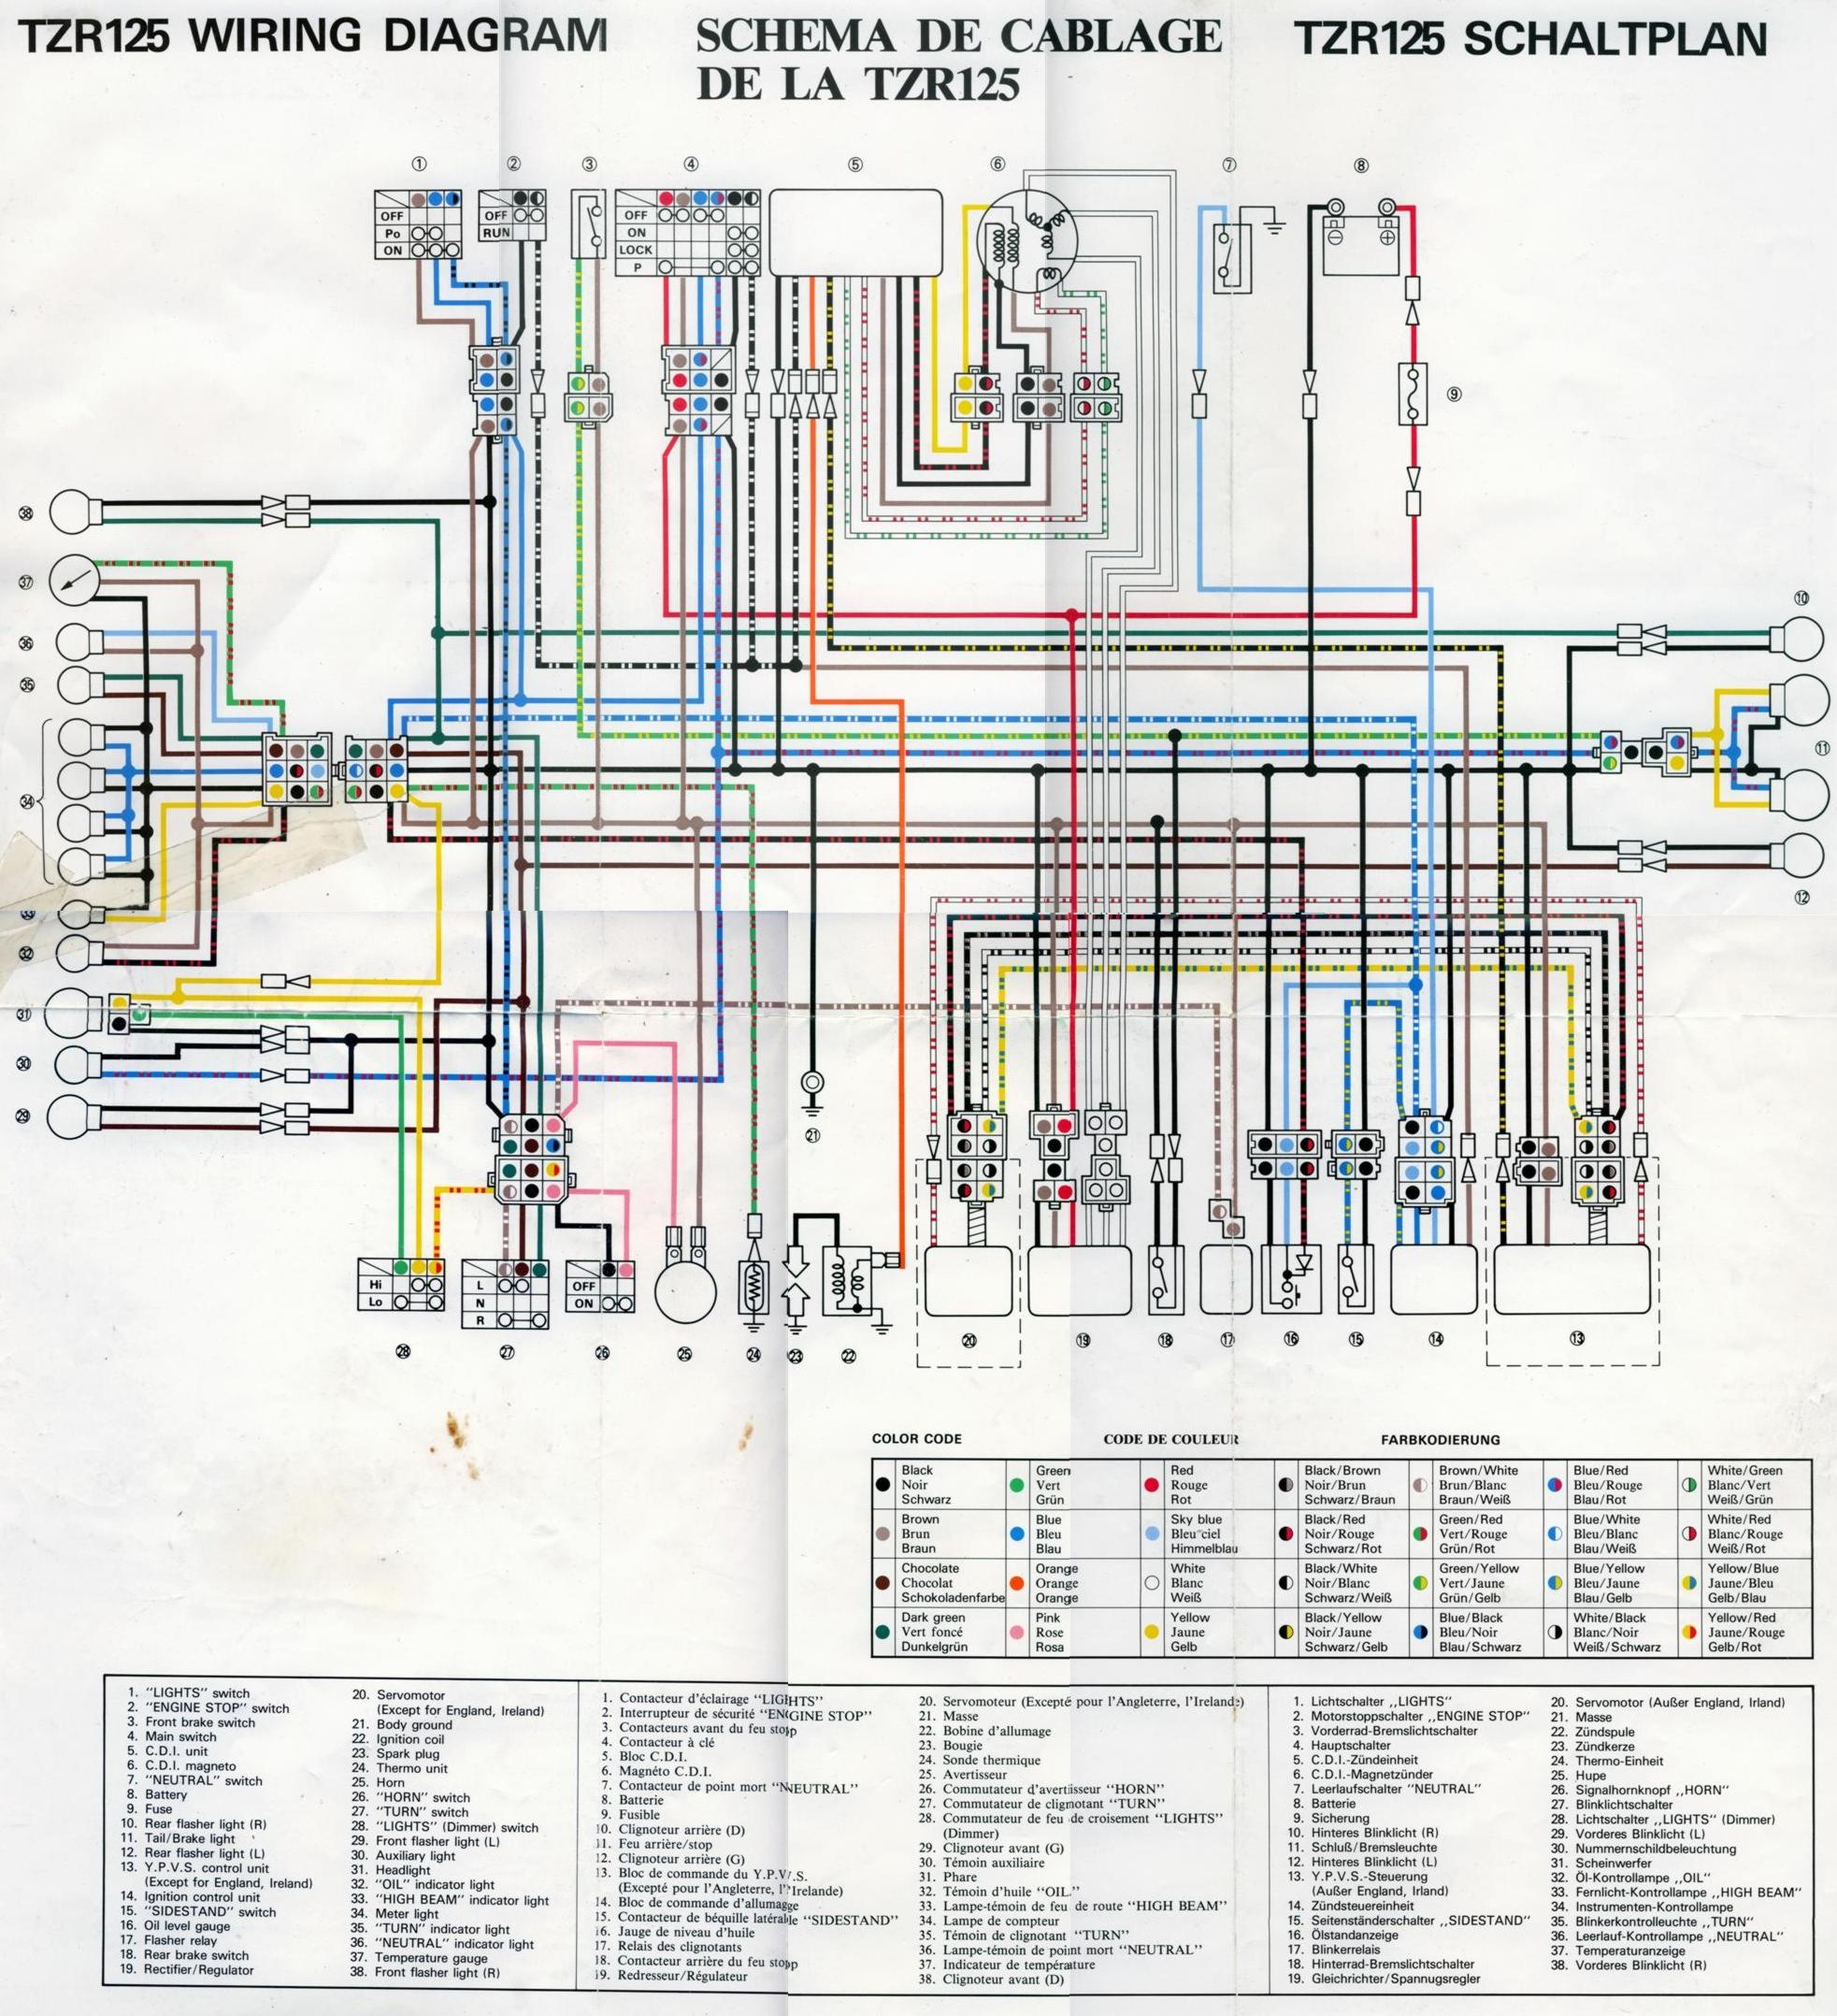 62_1283165399 Yamaha Dt R Wiring Diagram on street conversion, diagram charger, parts philippines,